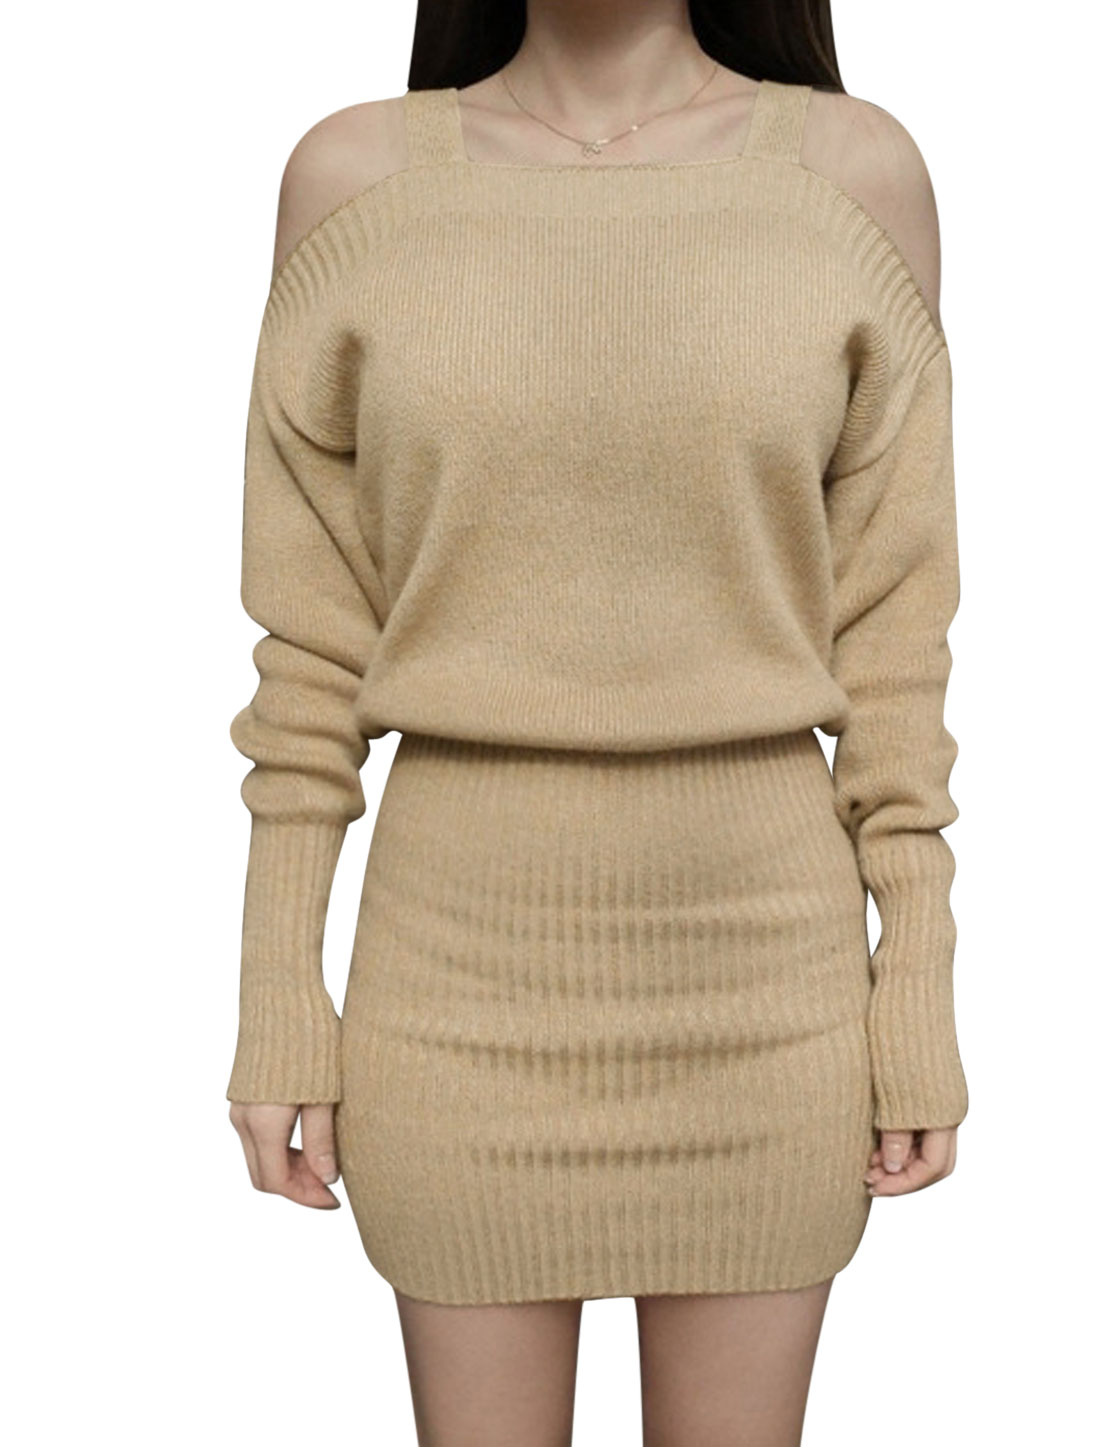 Woman Cut Out Shoulder Batwing Sleeves Bodycon Knitted Dress Beige S